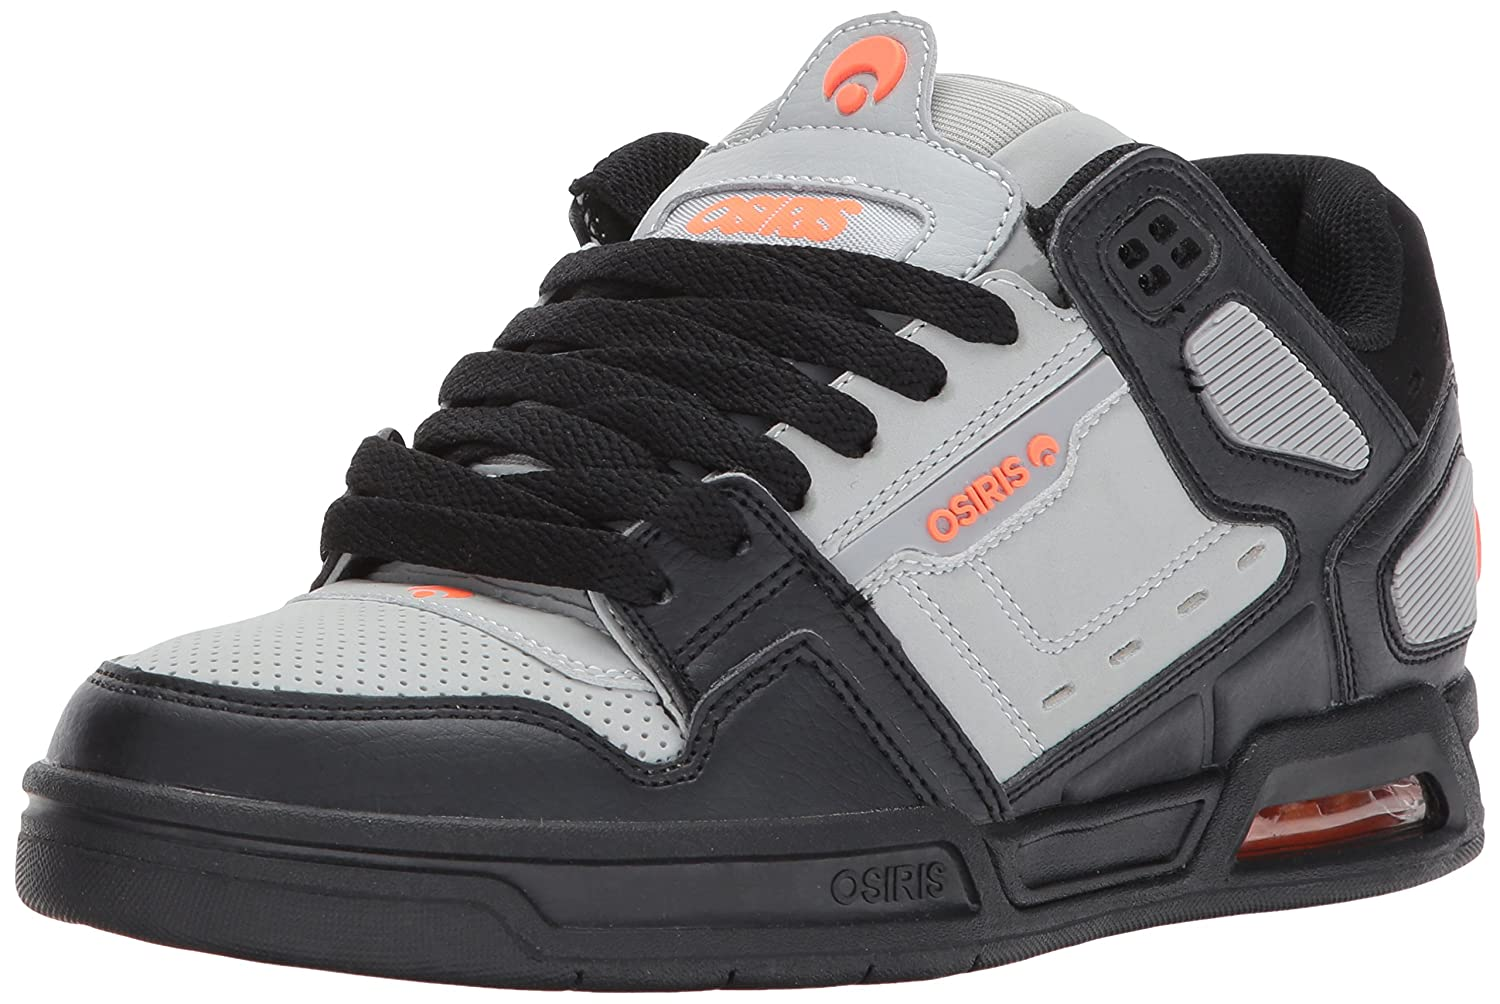 Osiris メンズ B06X3RZRJW 8 D(M) US Light Grey/Orange